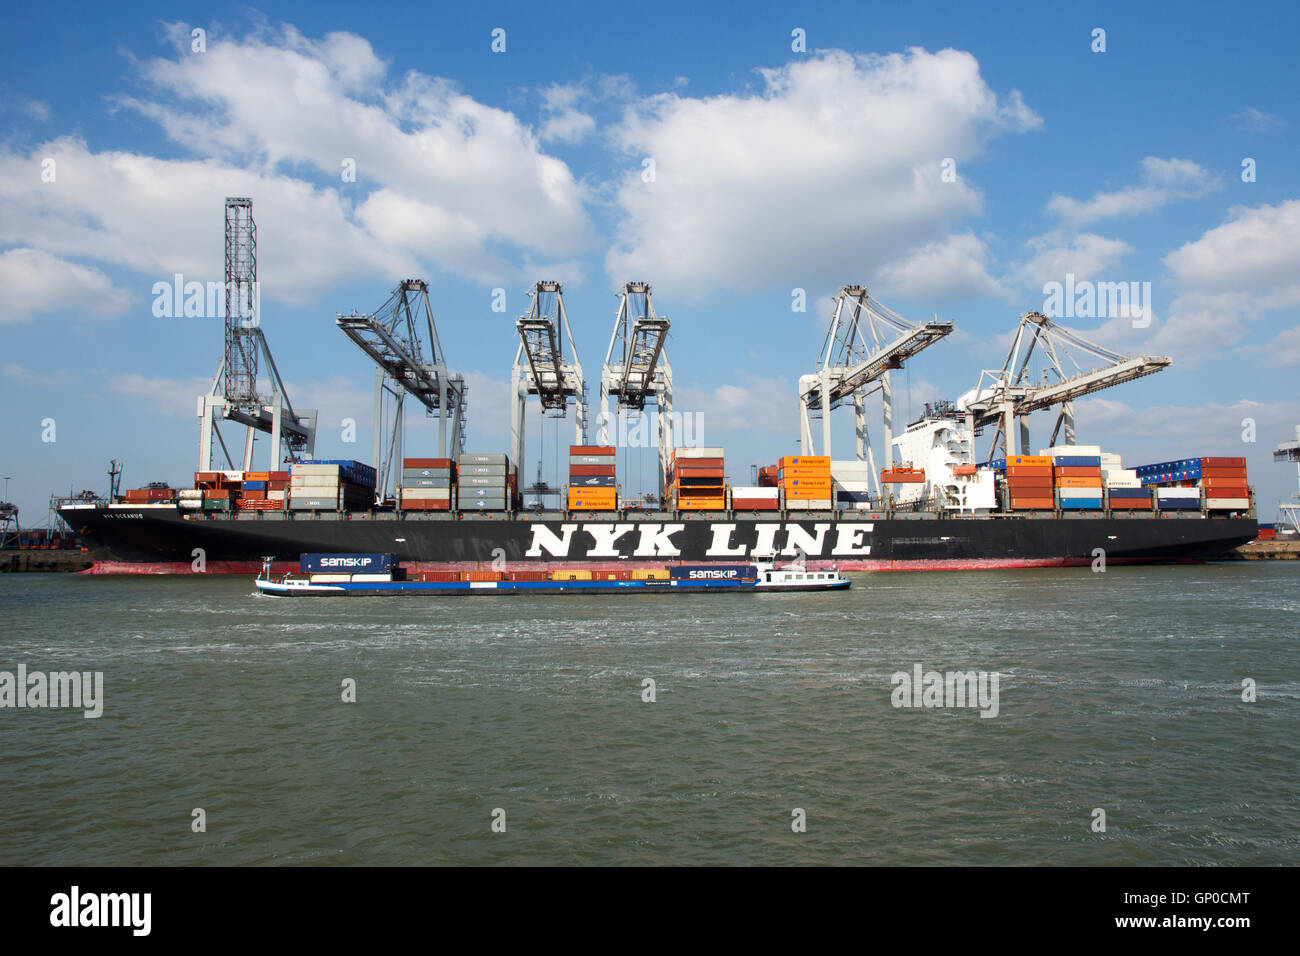 Container ship Nyk Oceanus from NYK Line moored at a container terminal in the Port of Rotterdam - Stock Image